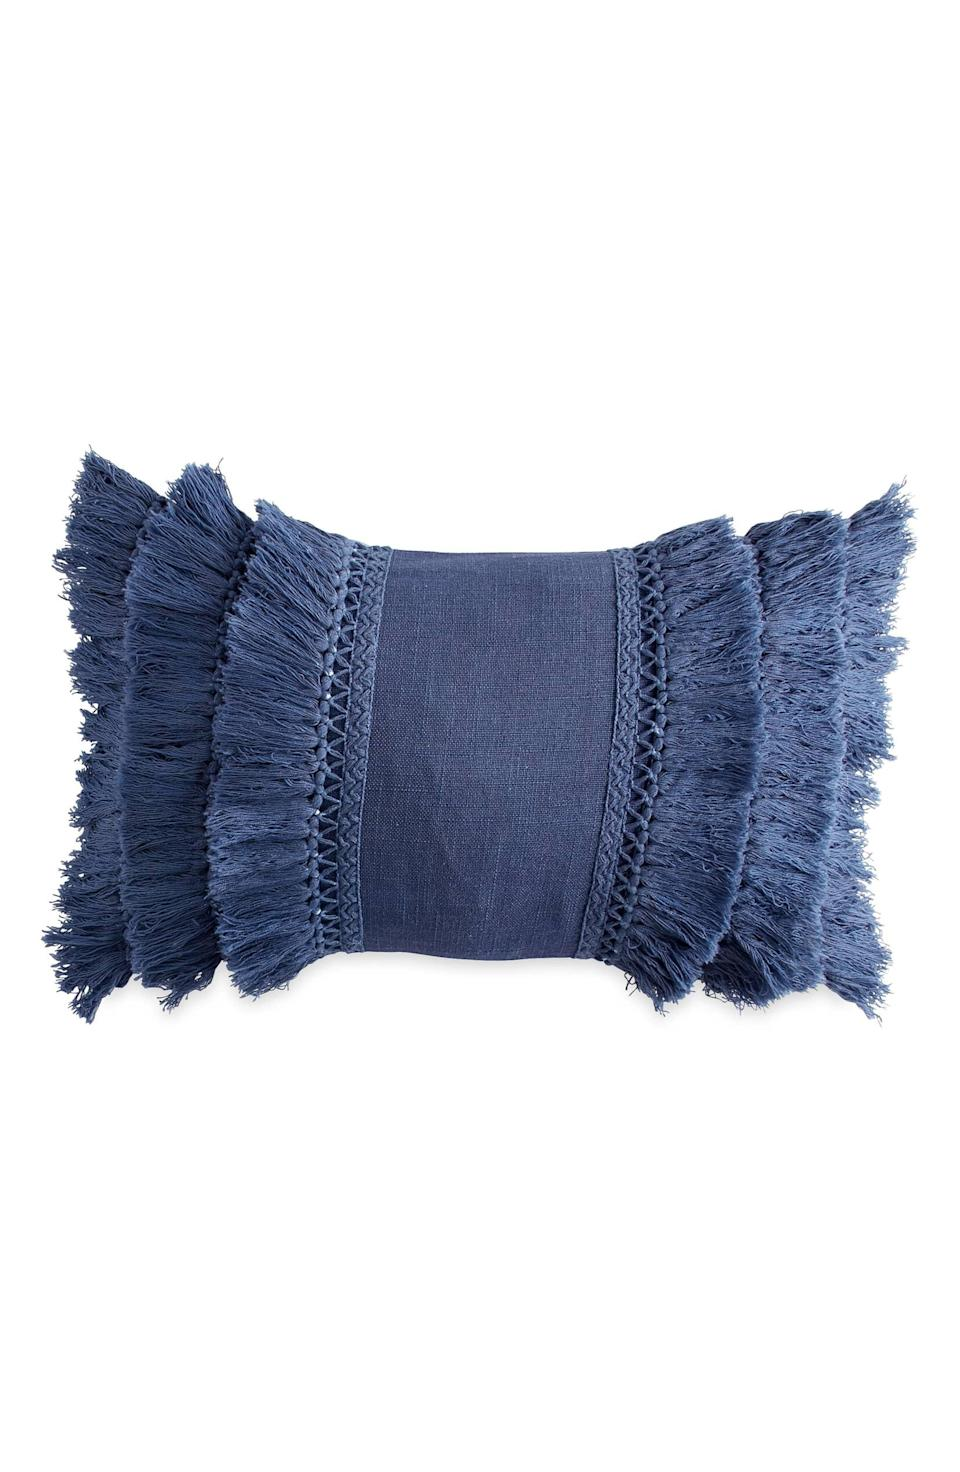 """The whole boho-chic movement may have gone stale, but a touch of subtle fringe-y style can still feel fresh.<br><br><strong>Peri Home</strong> Fringe Pillow, $, available at <a href=""""https://go.skimresources.com/?id=30283X879131&url=https%3A%2F%2Fshop.nordstrom.com%2Fs%2Fperi-home-fringe-pillow%2F4625511"""" rel=""""nofollow noopener"""" target=""""_blank"""" data-ylk=""""slk:Nordstrom"""" class=""""link rapid-noclick-resp"""">Nordstrom</a>"""